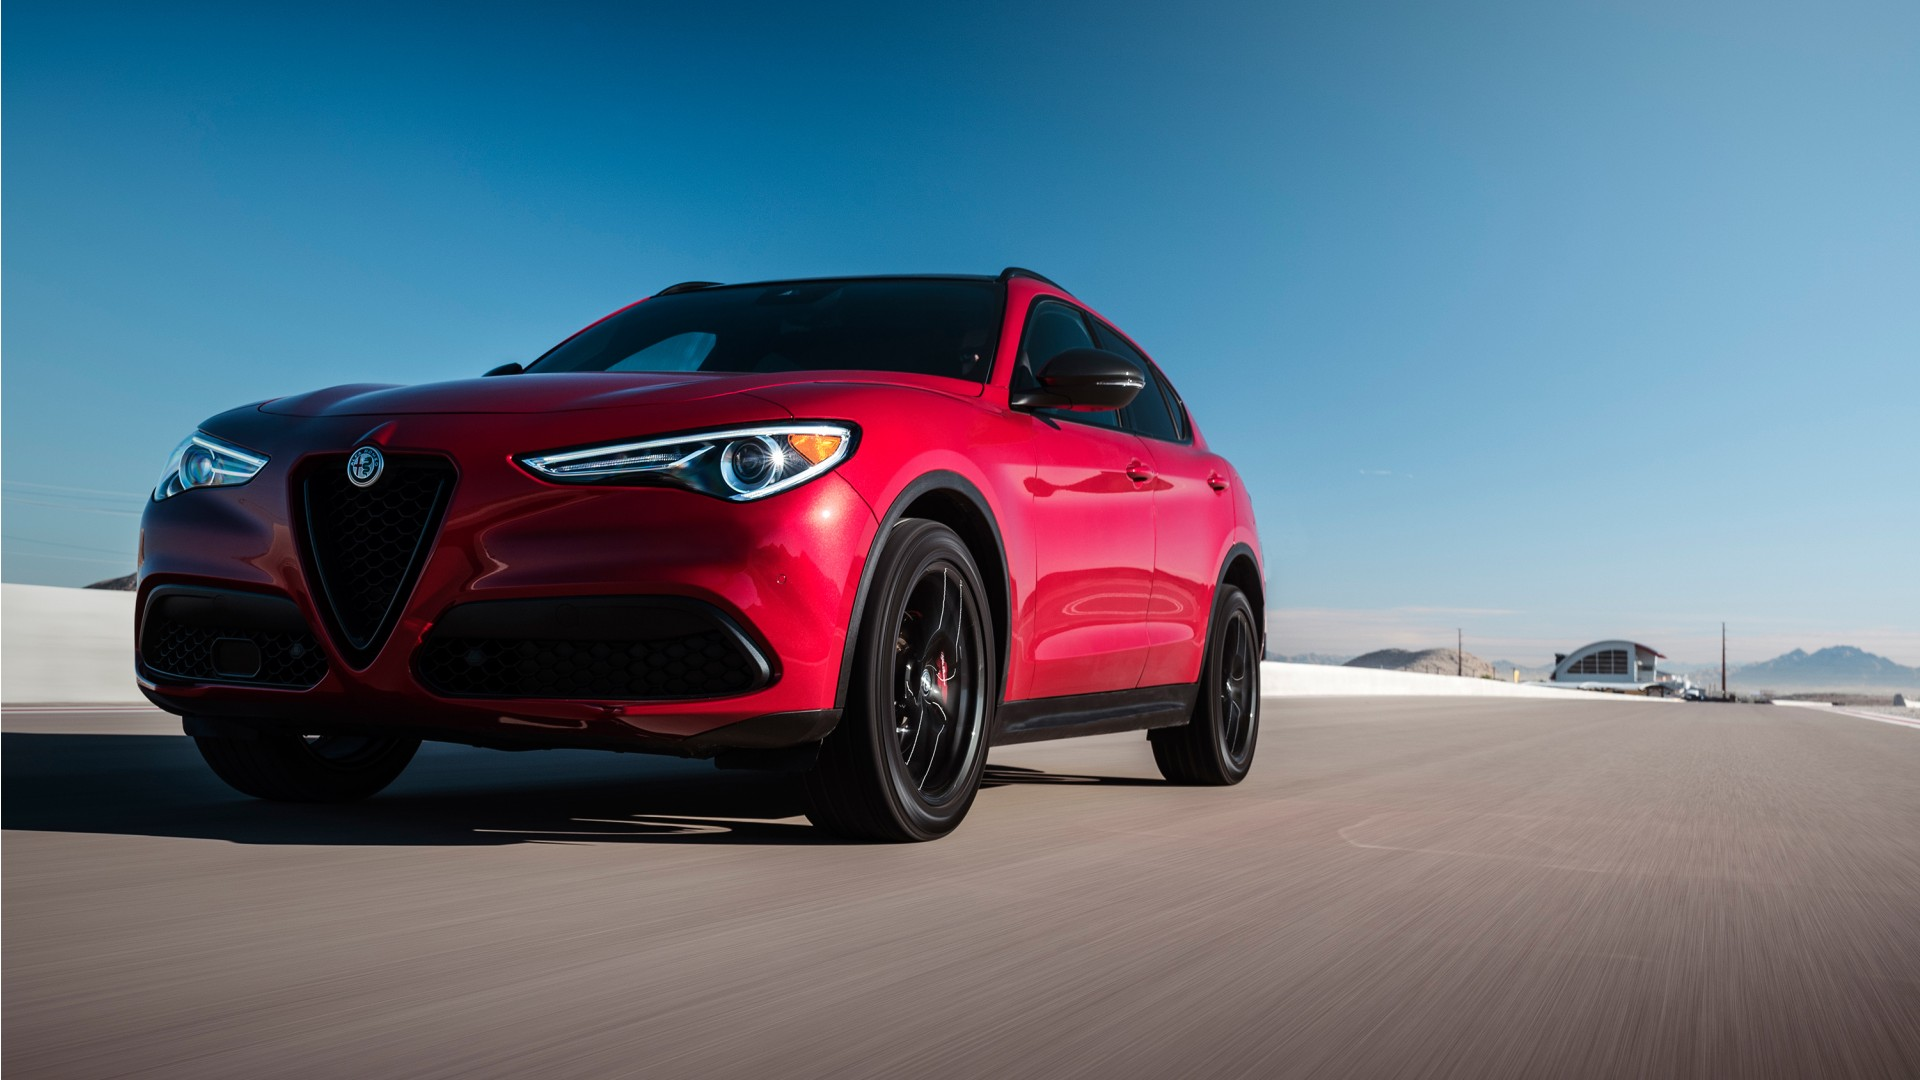 Ferrari Car Wallpaper Hd Download 2018 Alfa Romeo Stelvio Nero Edizione Wallpaper Hd Car